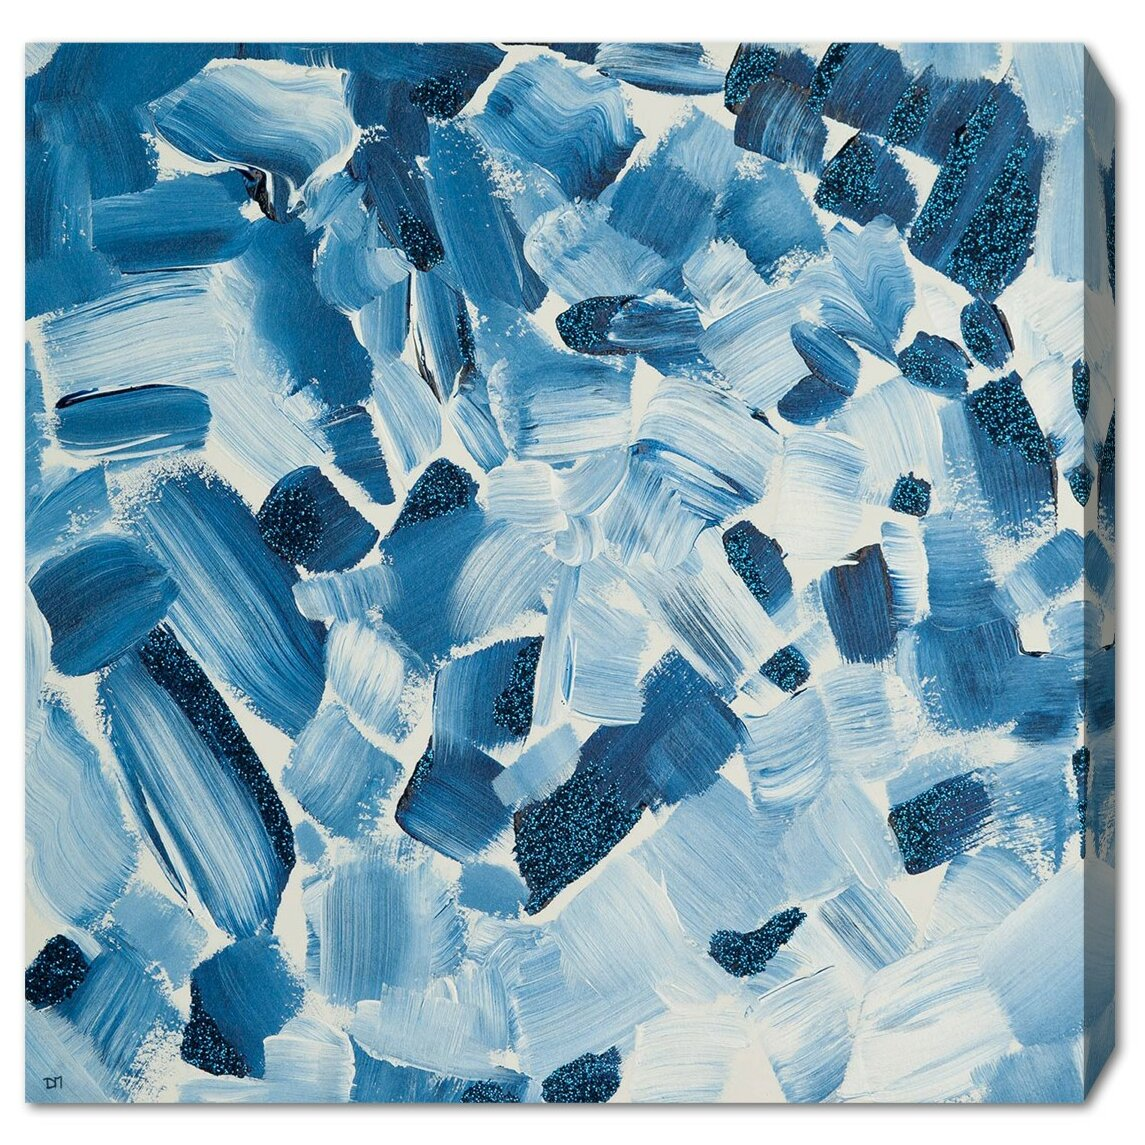 Bronx Blue Bedroom Project: Ivy Bronx 'Blue' Painting Print On Canvas